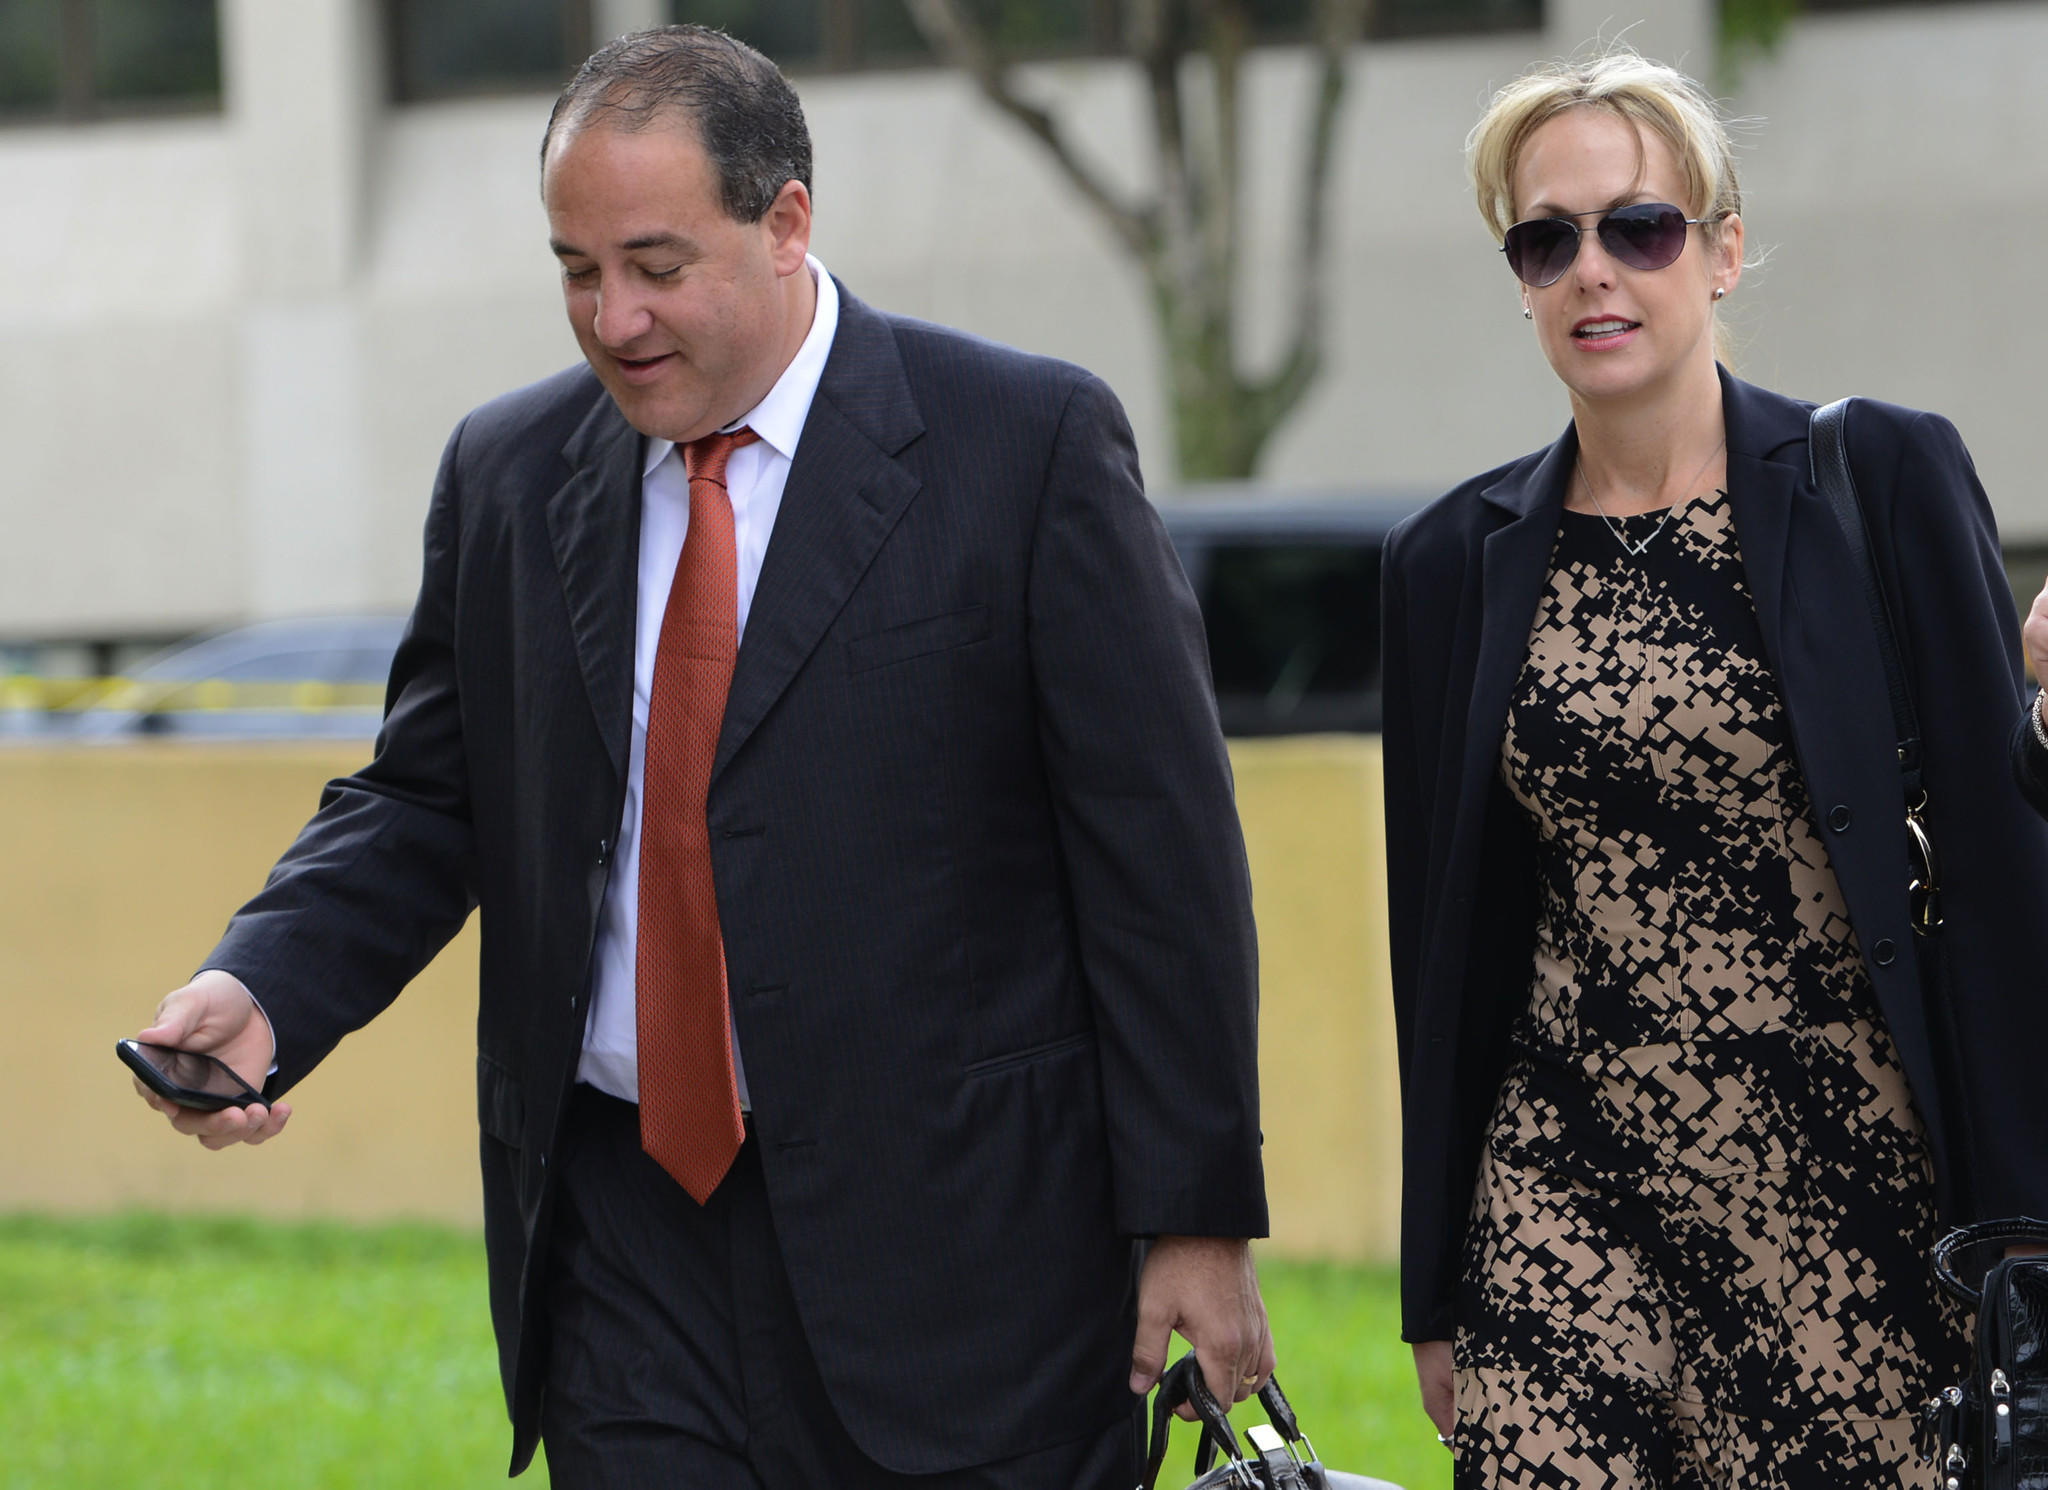 Christina Kitterman, an attorney who formerly worked for Scott Rothstein, arrives at the federal courthouse in West Palm Beach Thursday with her attorney Valentin Rodriguez Jr. for day four of her trial on wire fraud charges. Mark Randall, South Florida Sun Sentinel